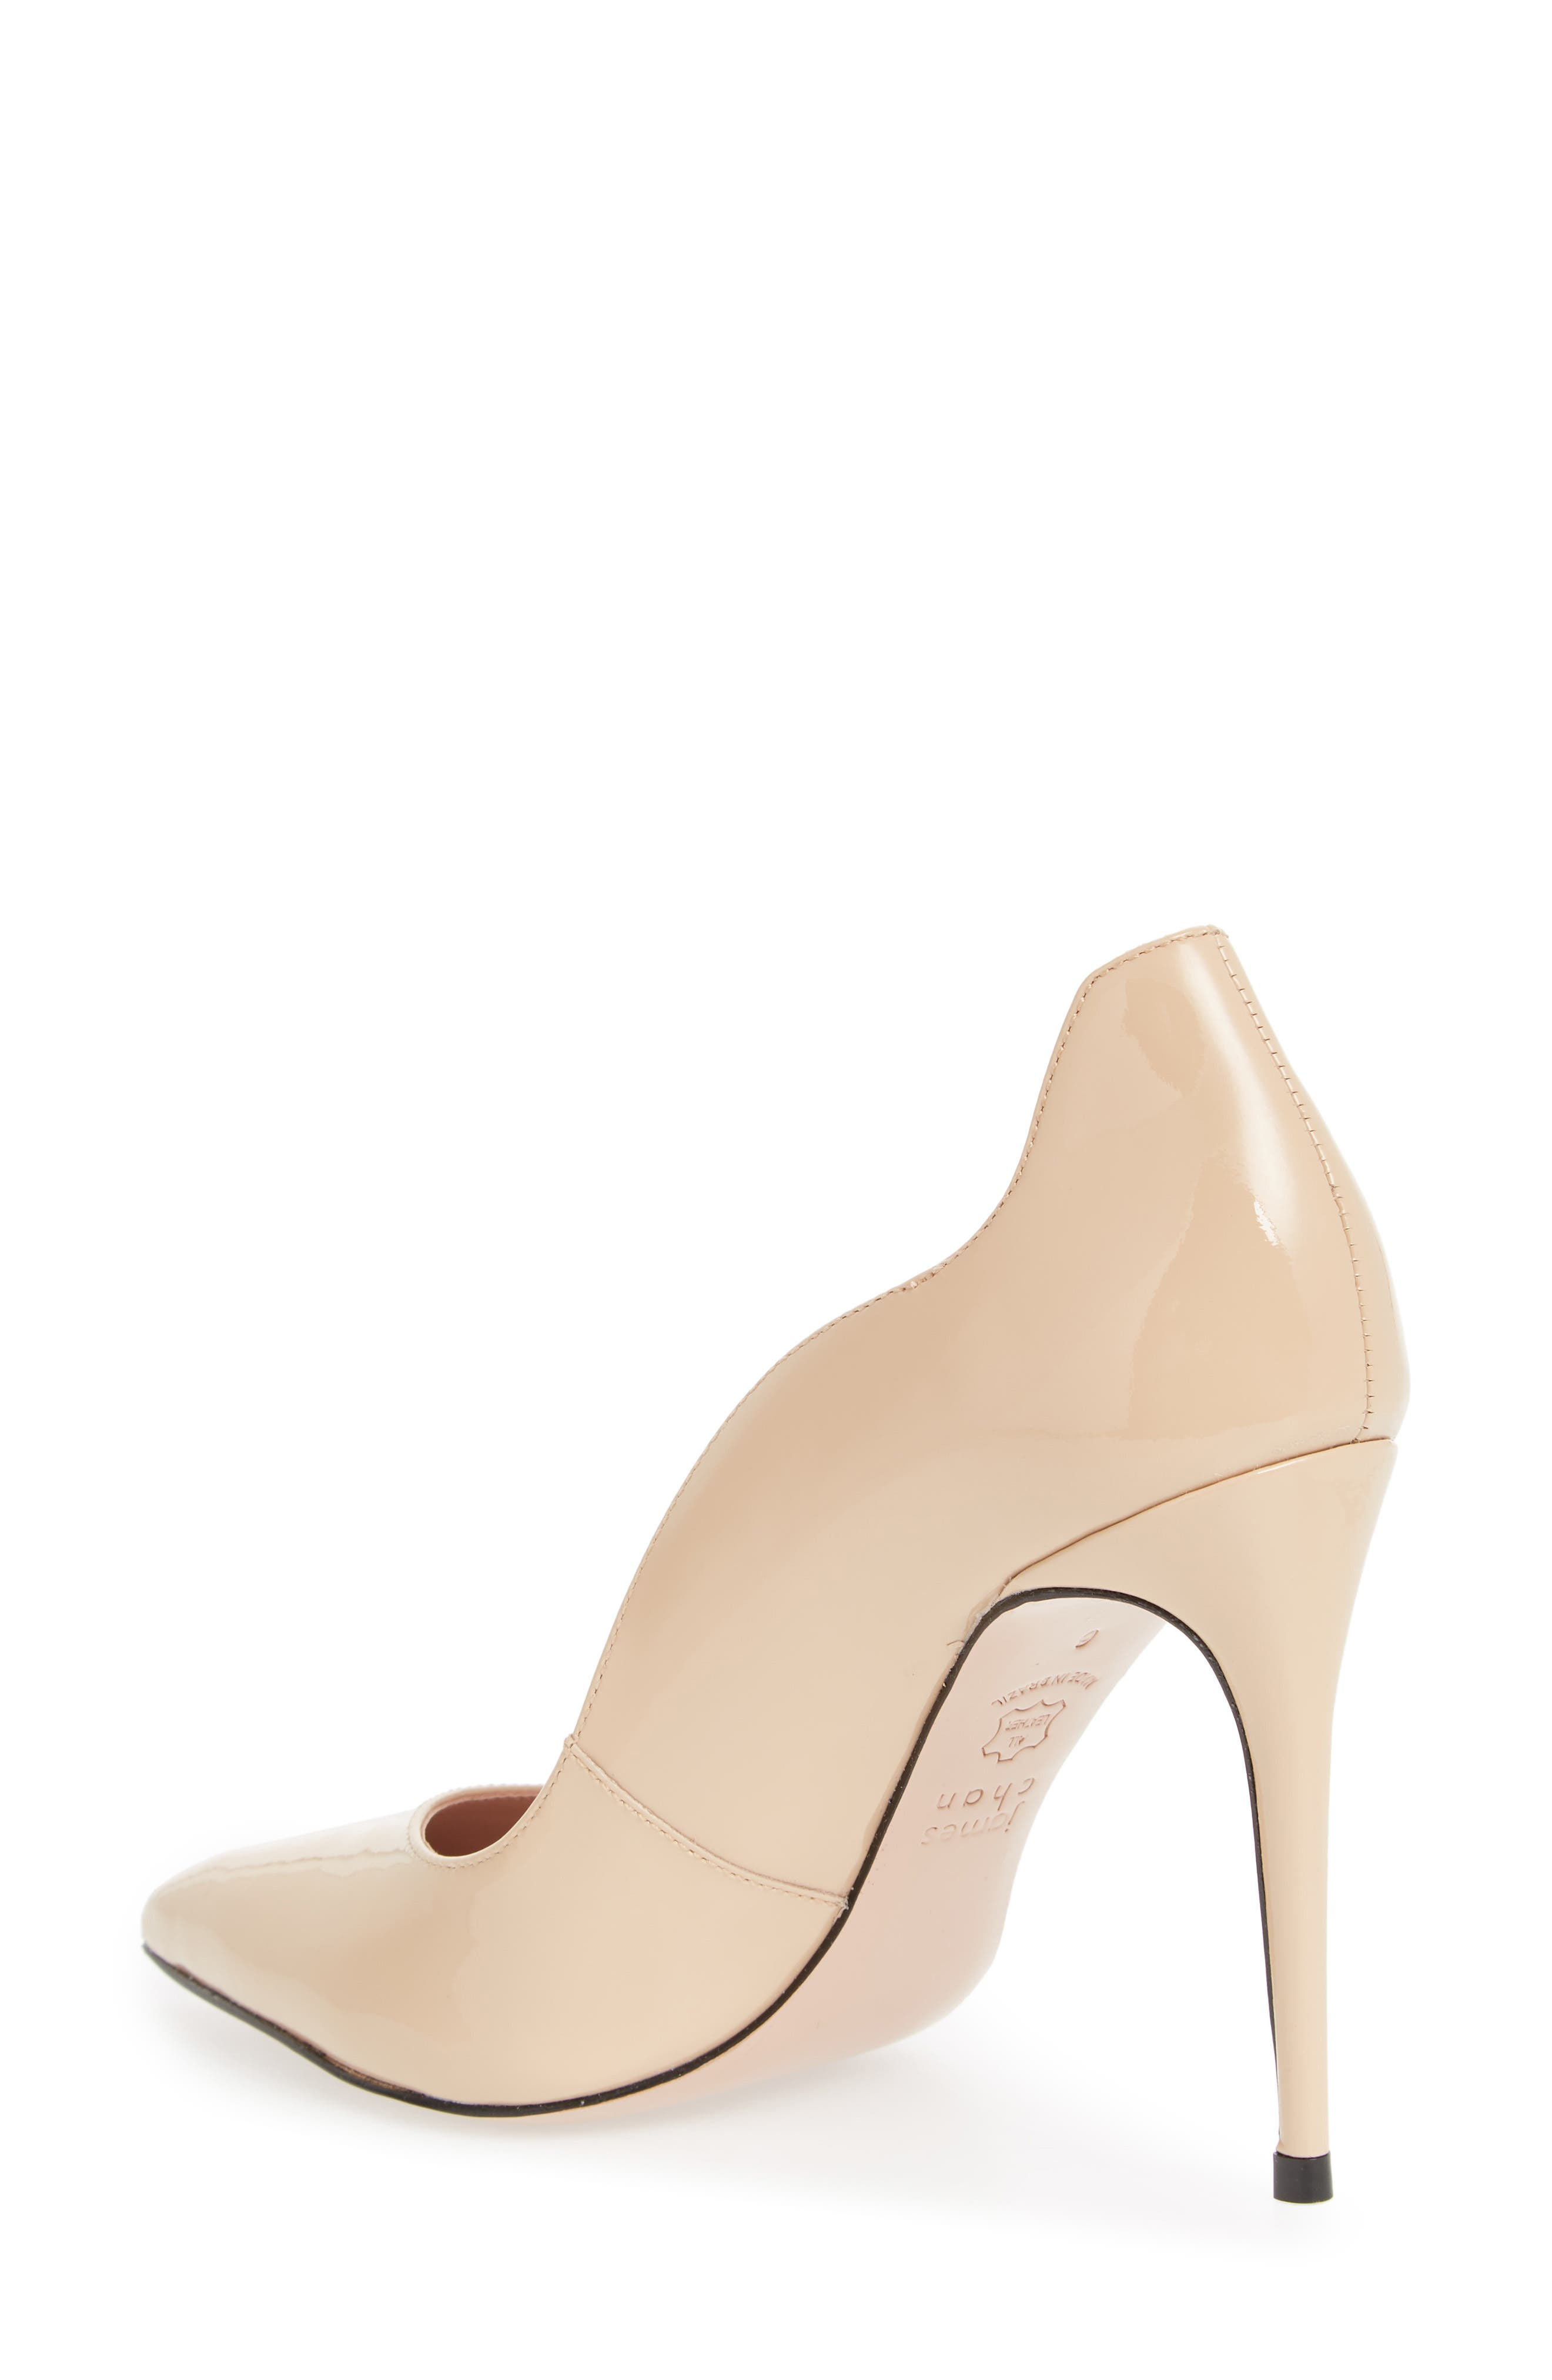 Anika Curvy Pump,                             Alternate thumbnail 2, color,                             NUDE SUEDE